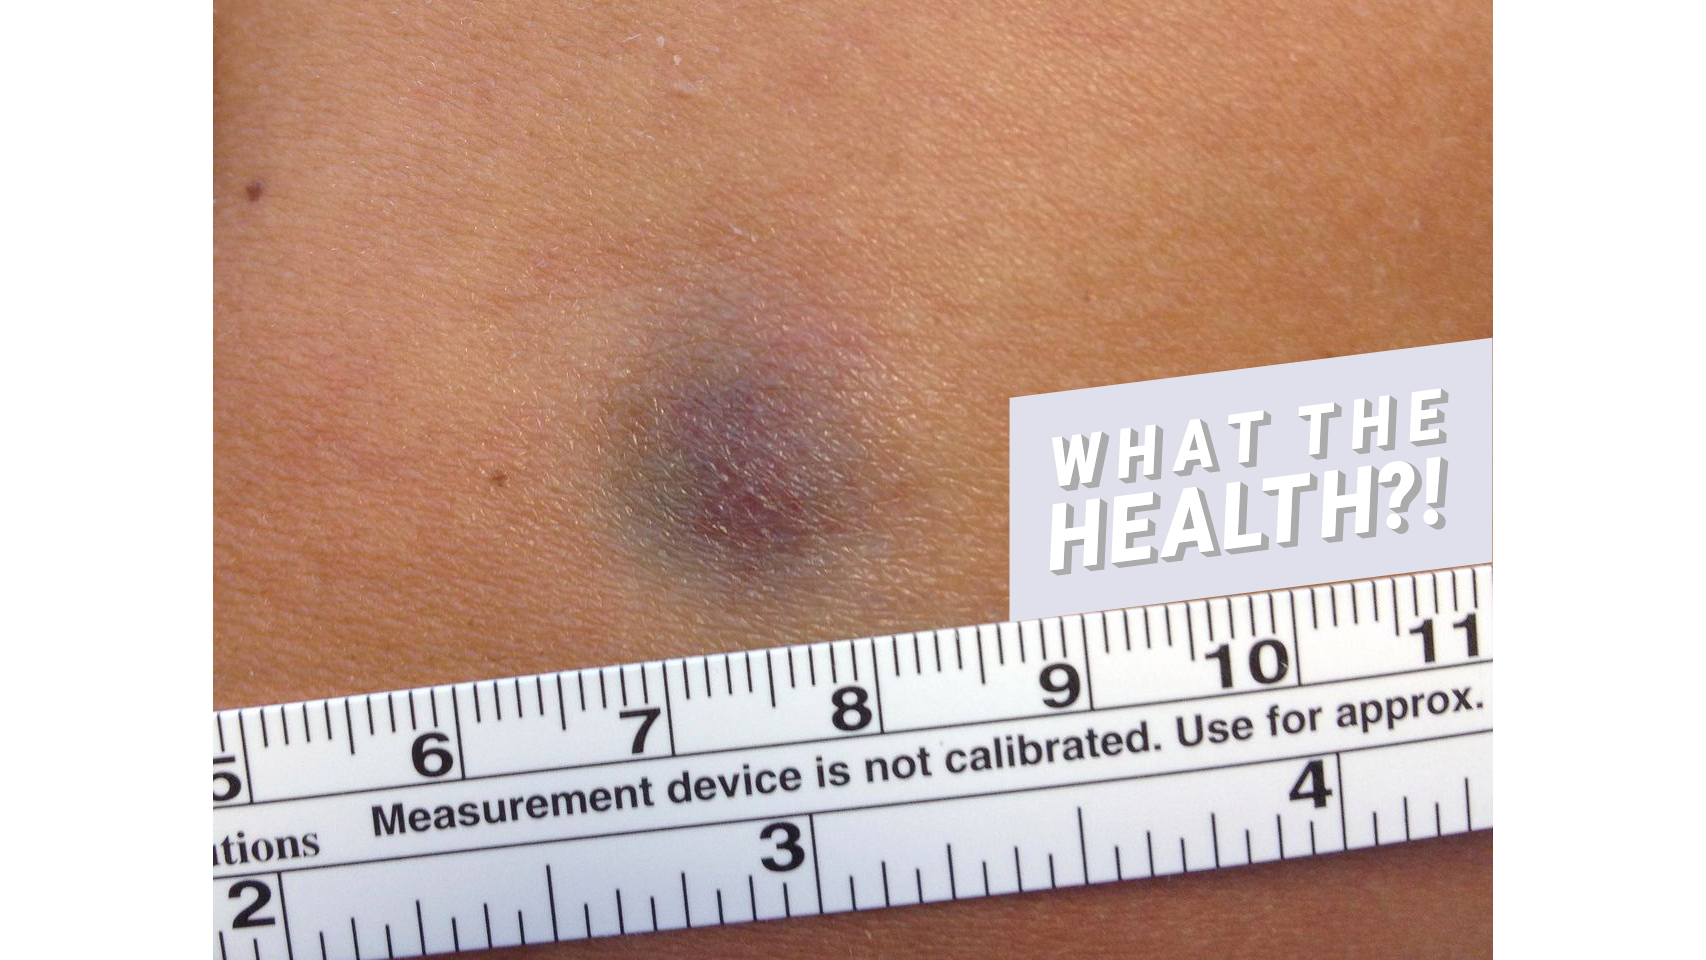 This Woman's Tiny Bruise Turned Out to Be a Rare Form of Skin Cancer